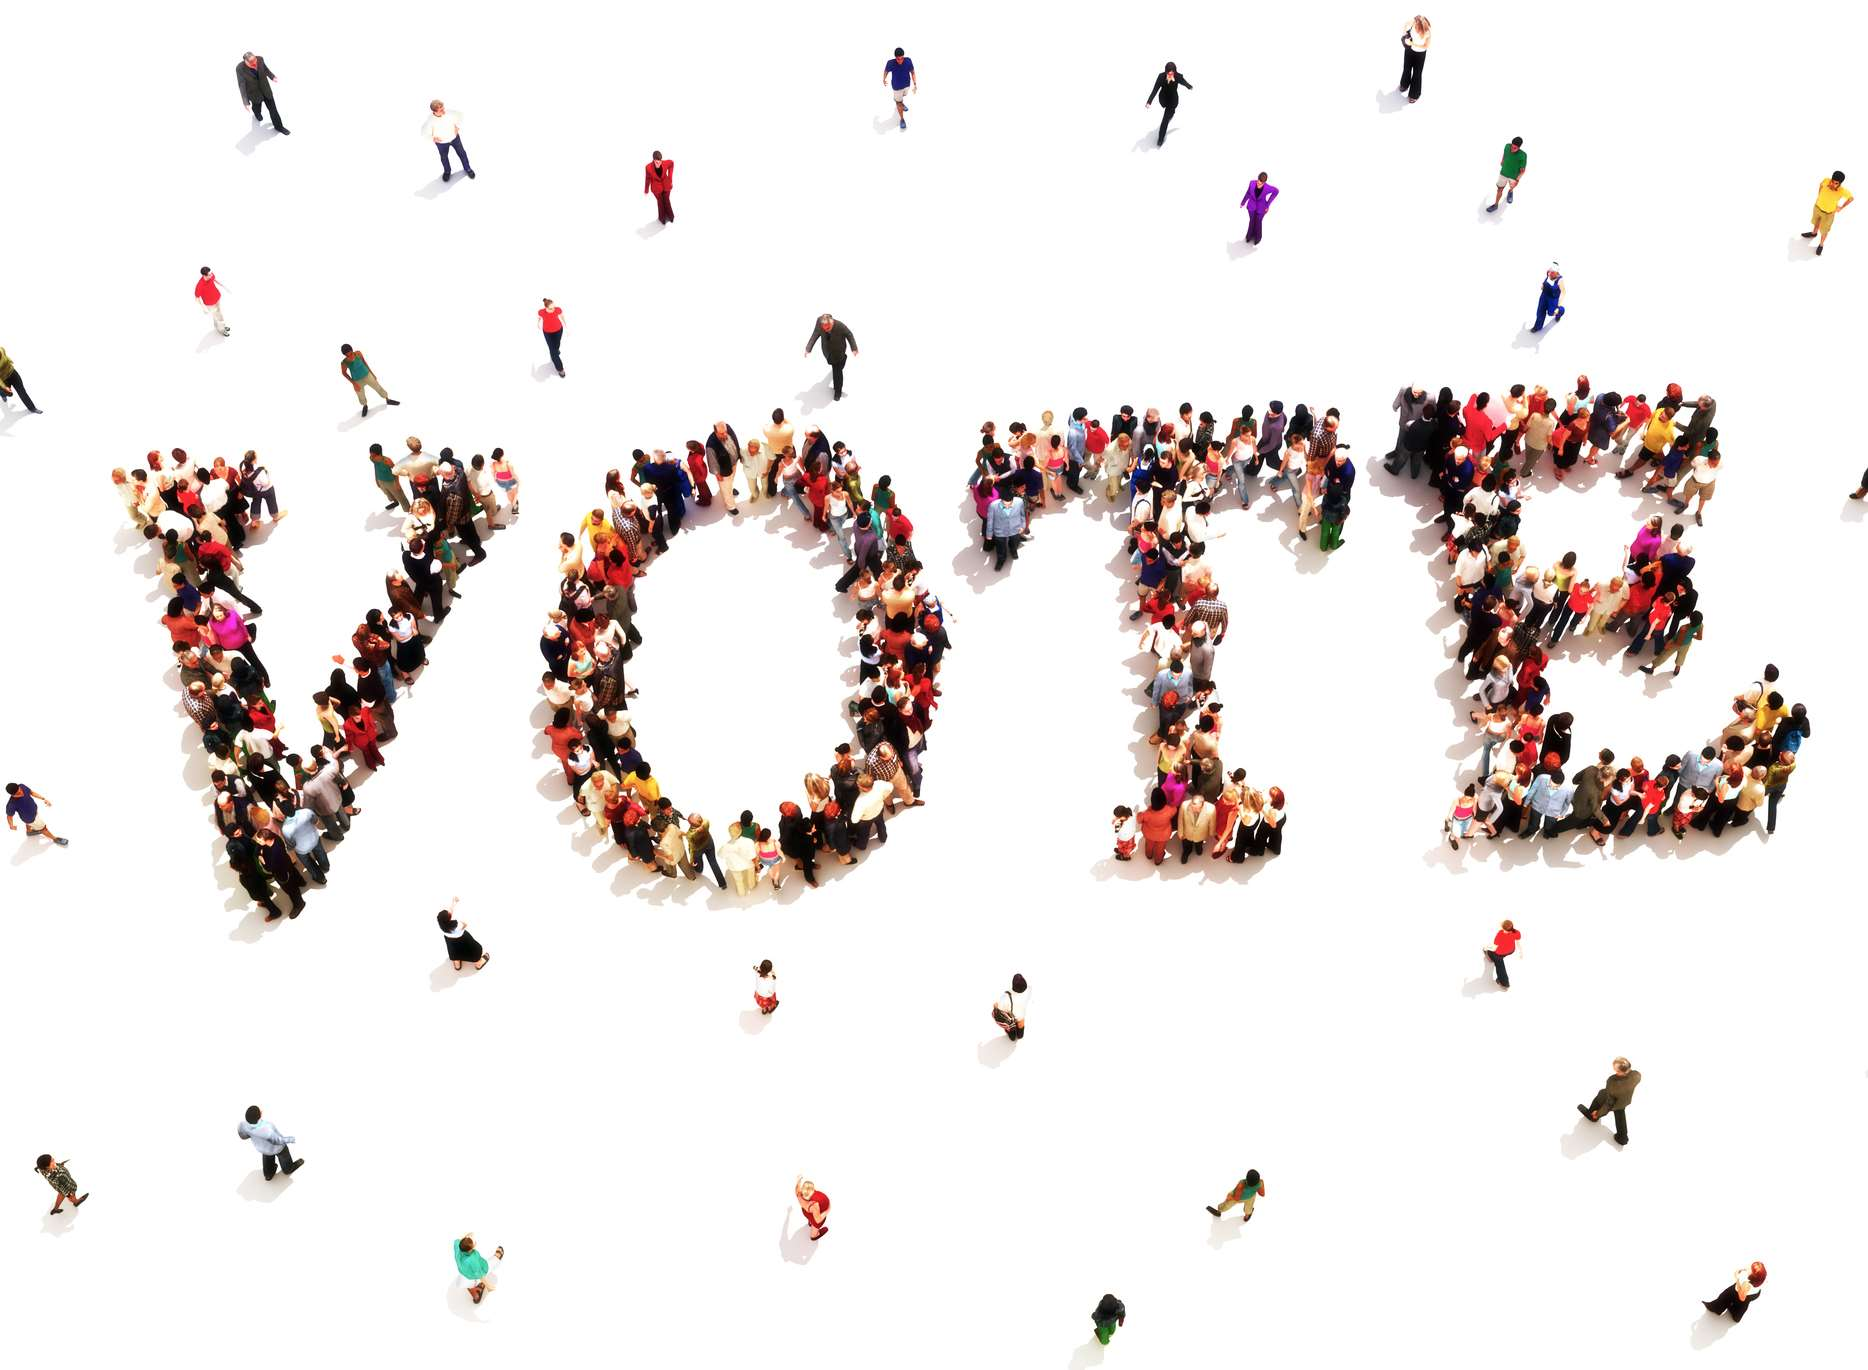 Voters have been urged to get to the polling stations. Stock image